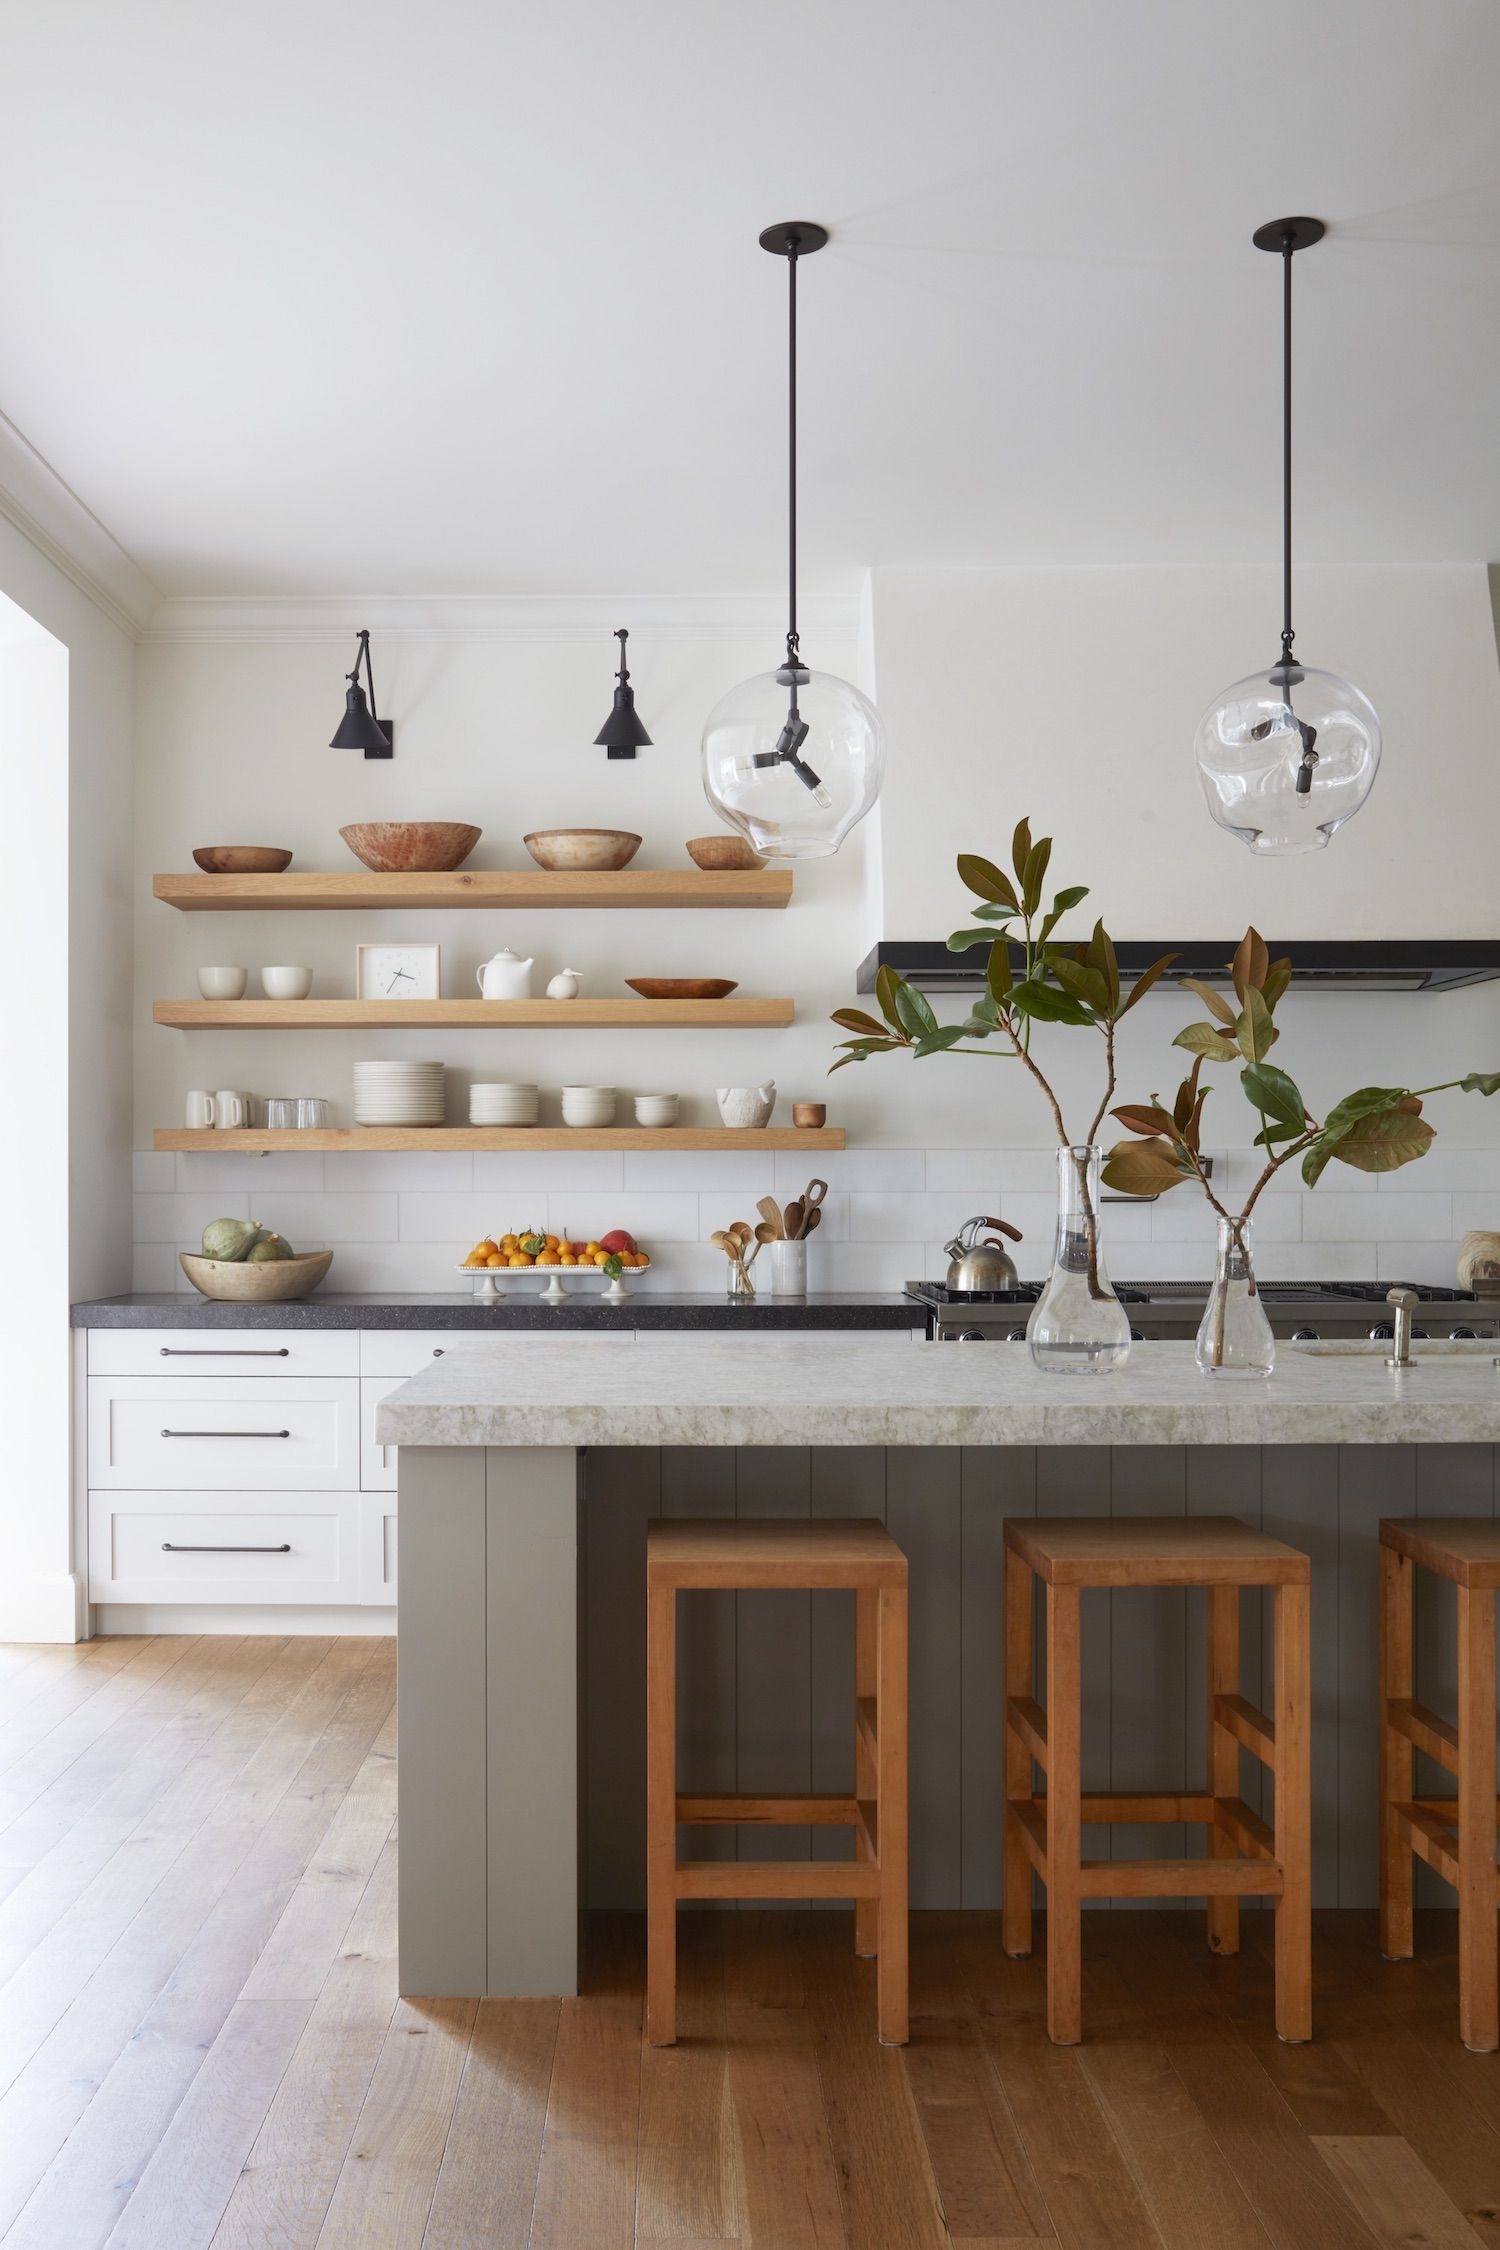 Color palette overall simplicity  elle design brentwood revival california interior also navy white and wood kitchen homes interiors in pinterest rh